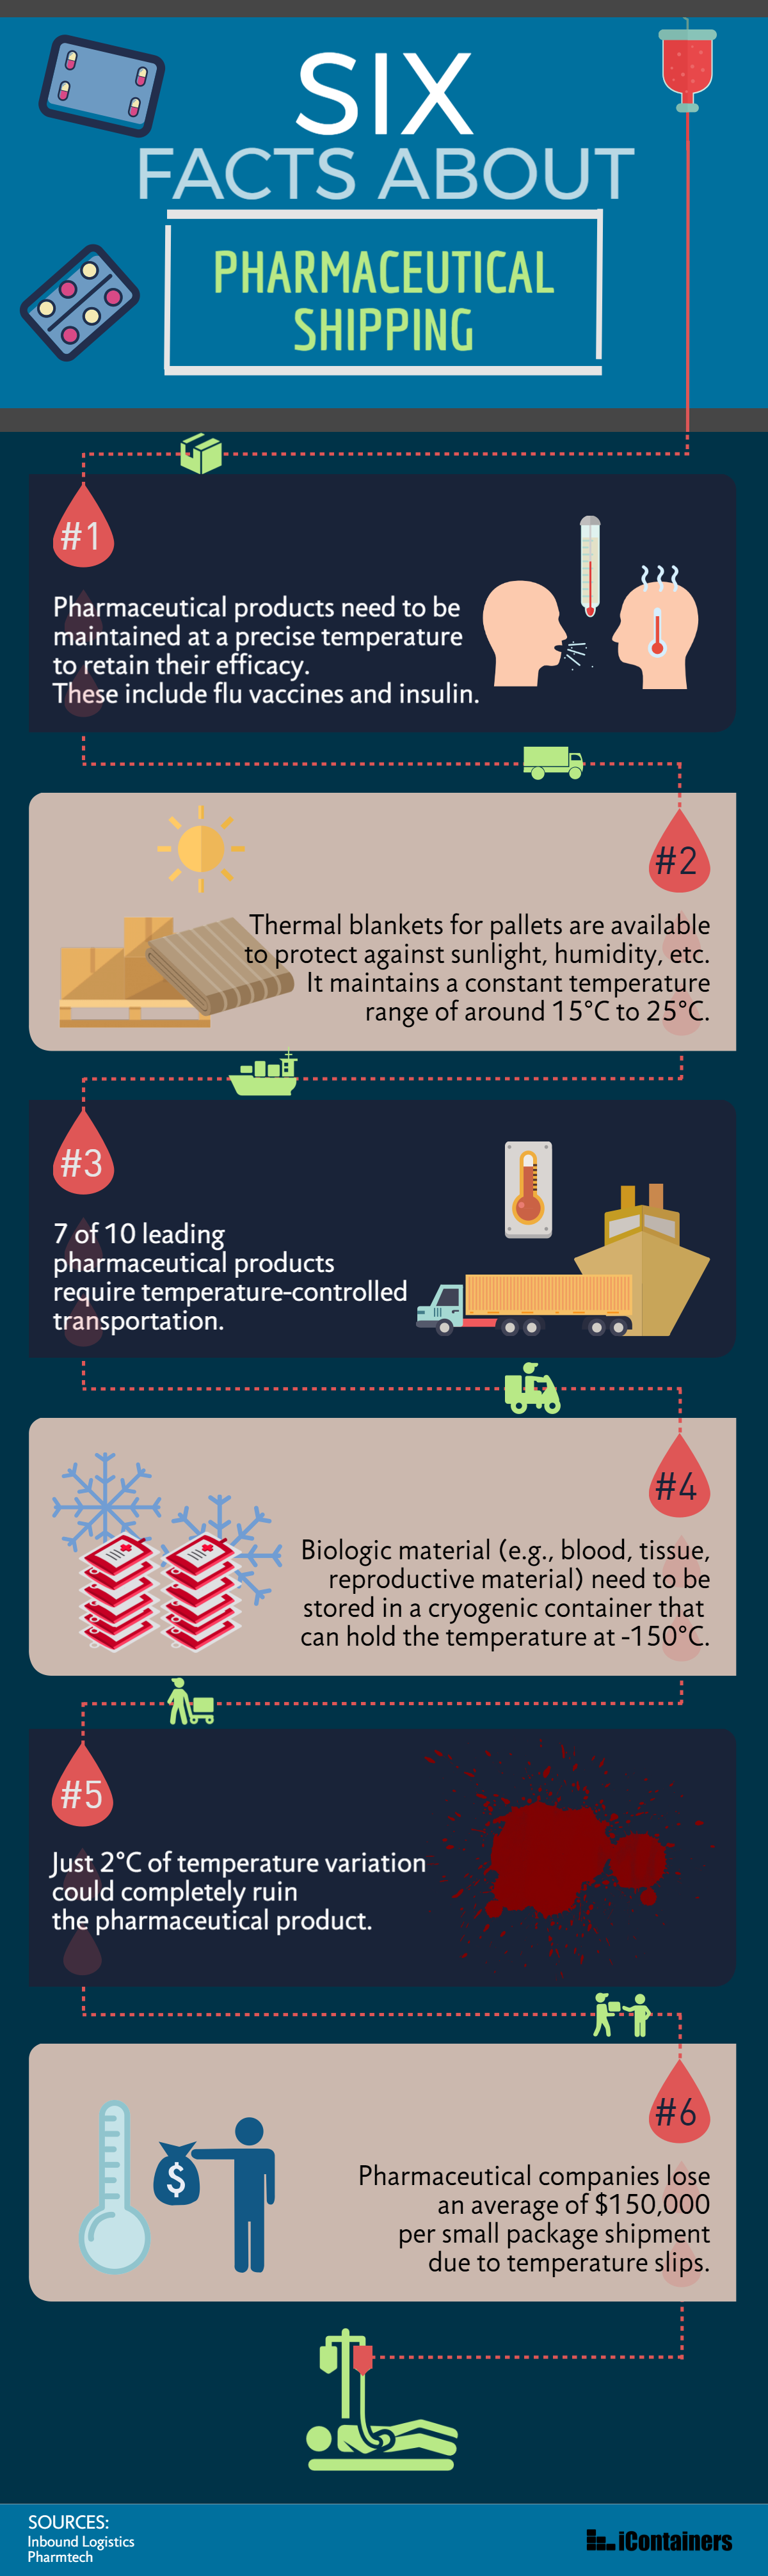 pharmaceutical shipping infographic image